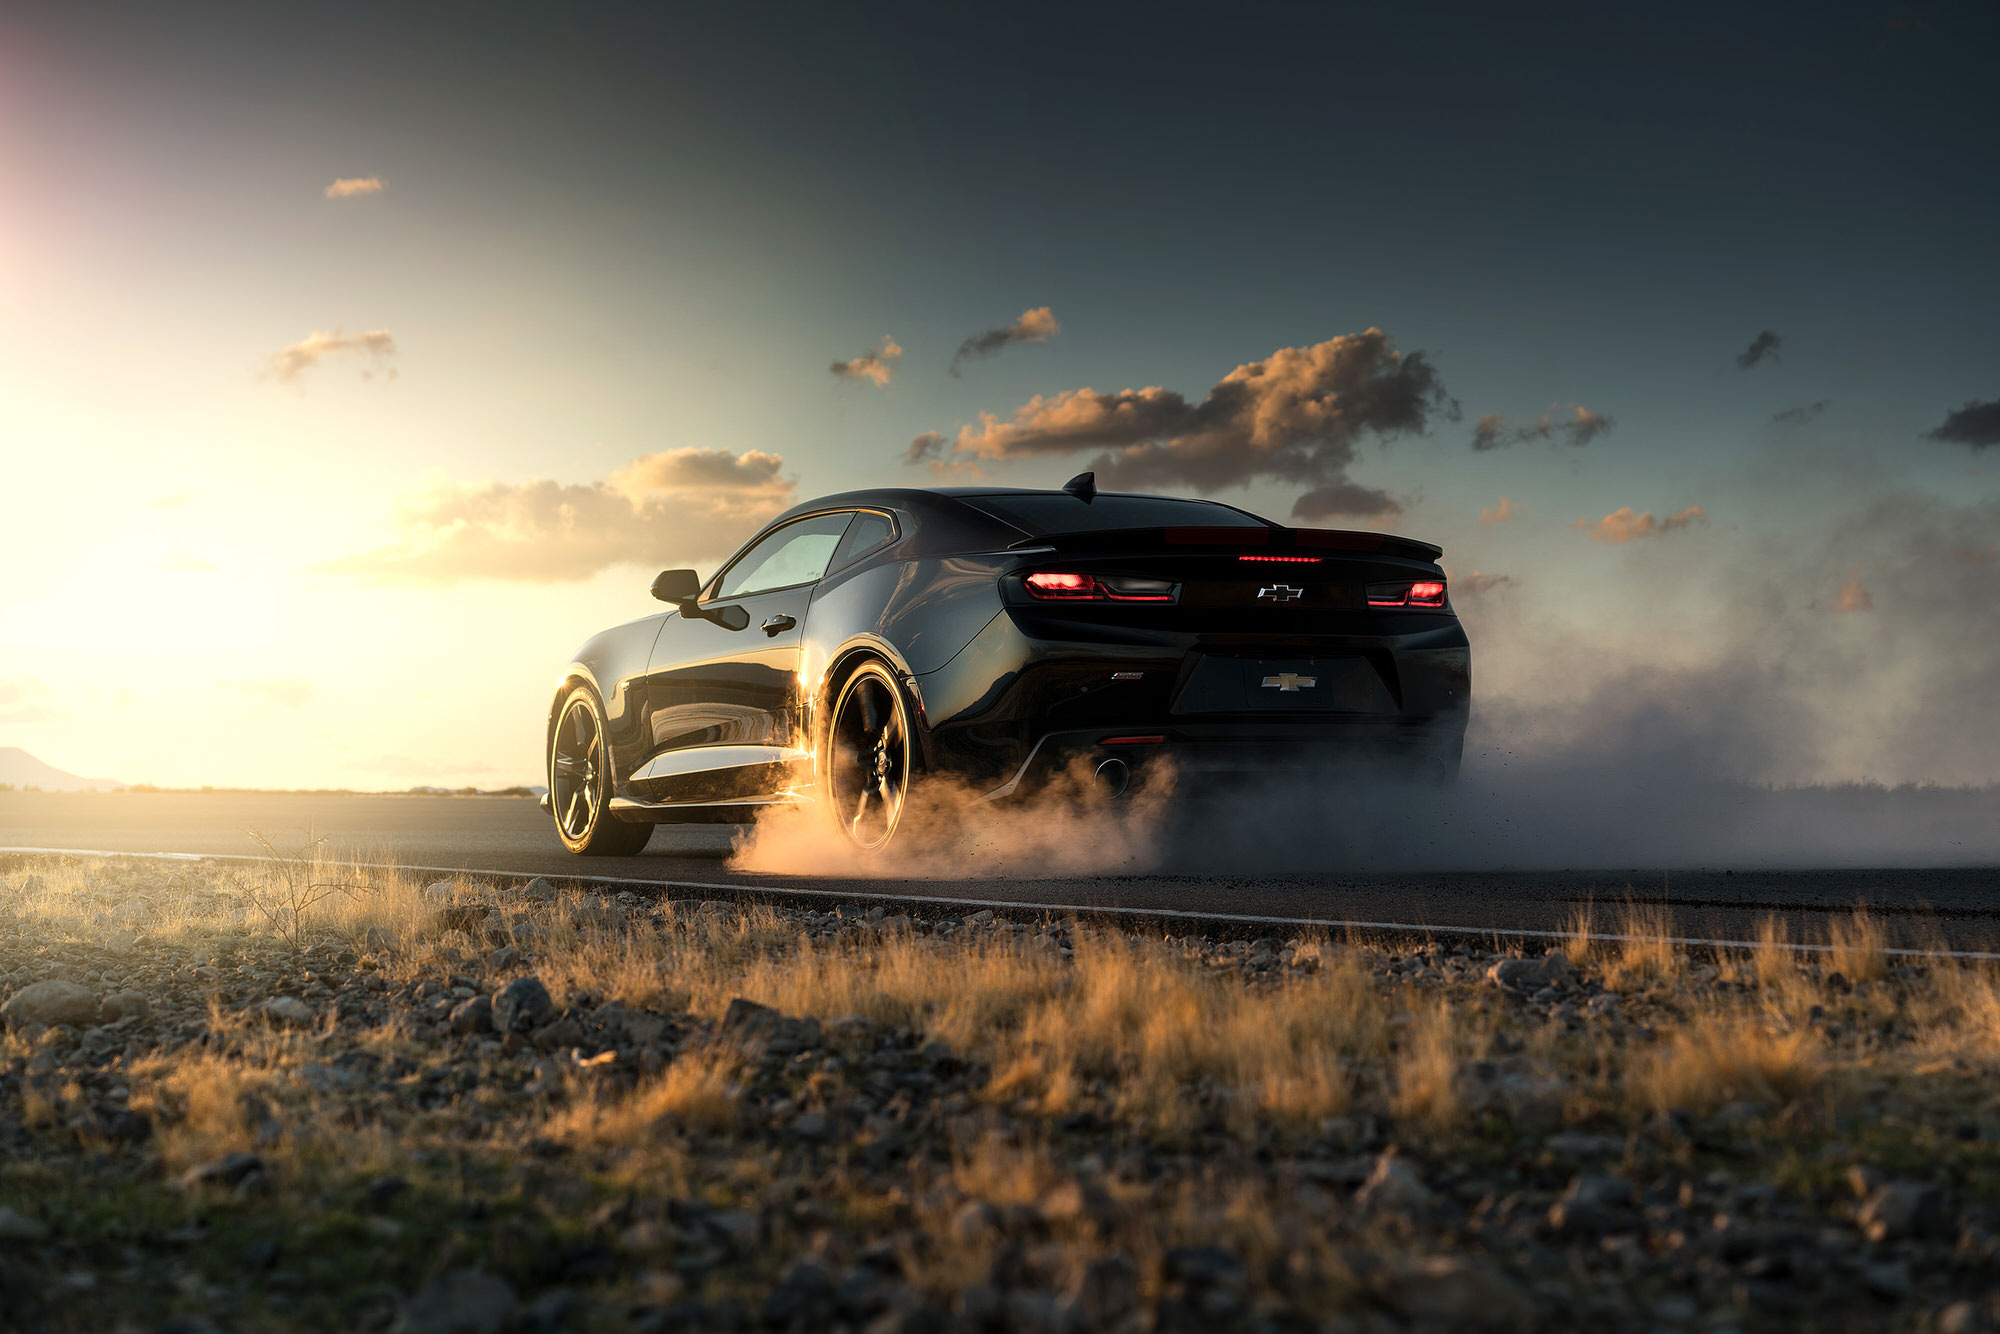 Burnout in the desert of Nevada in a black Chevrolet Camaro SS.